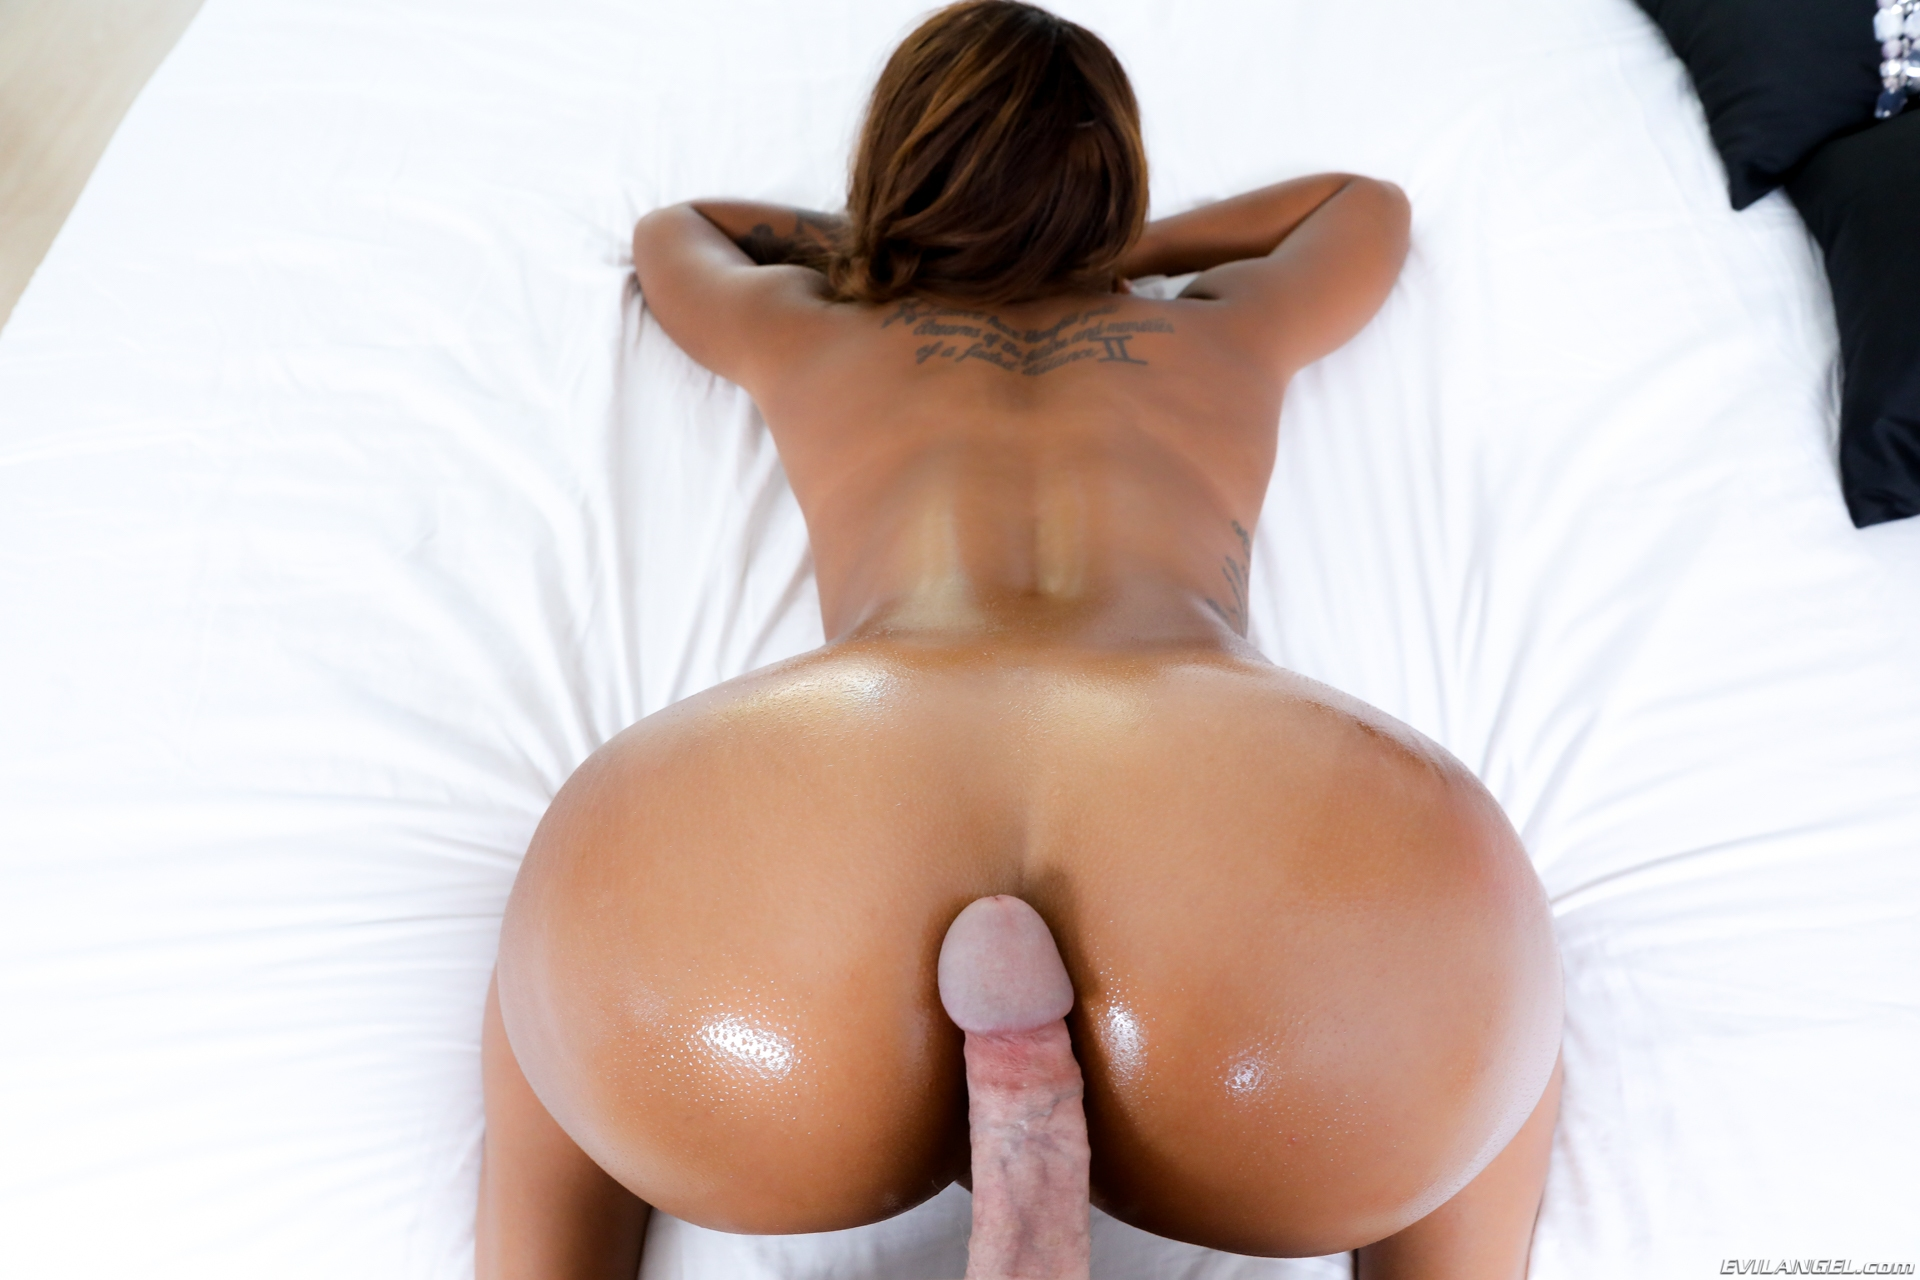 Butt free fuck gallery movie something is